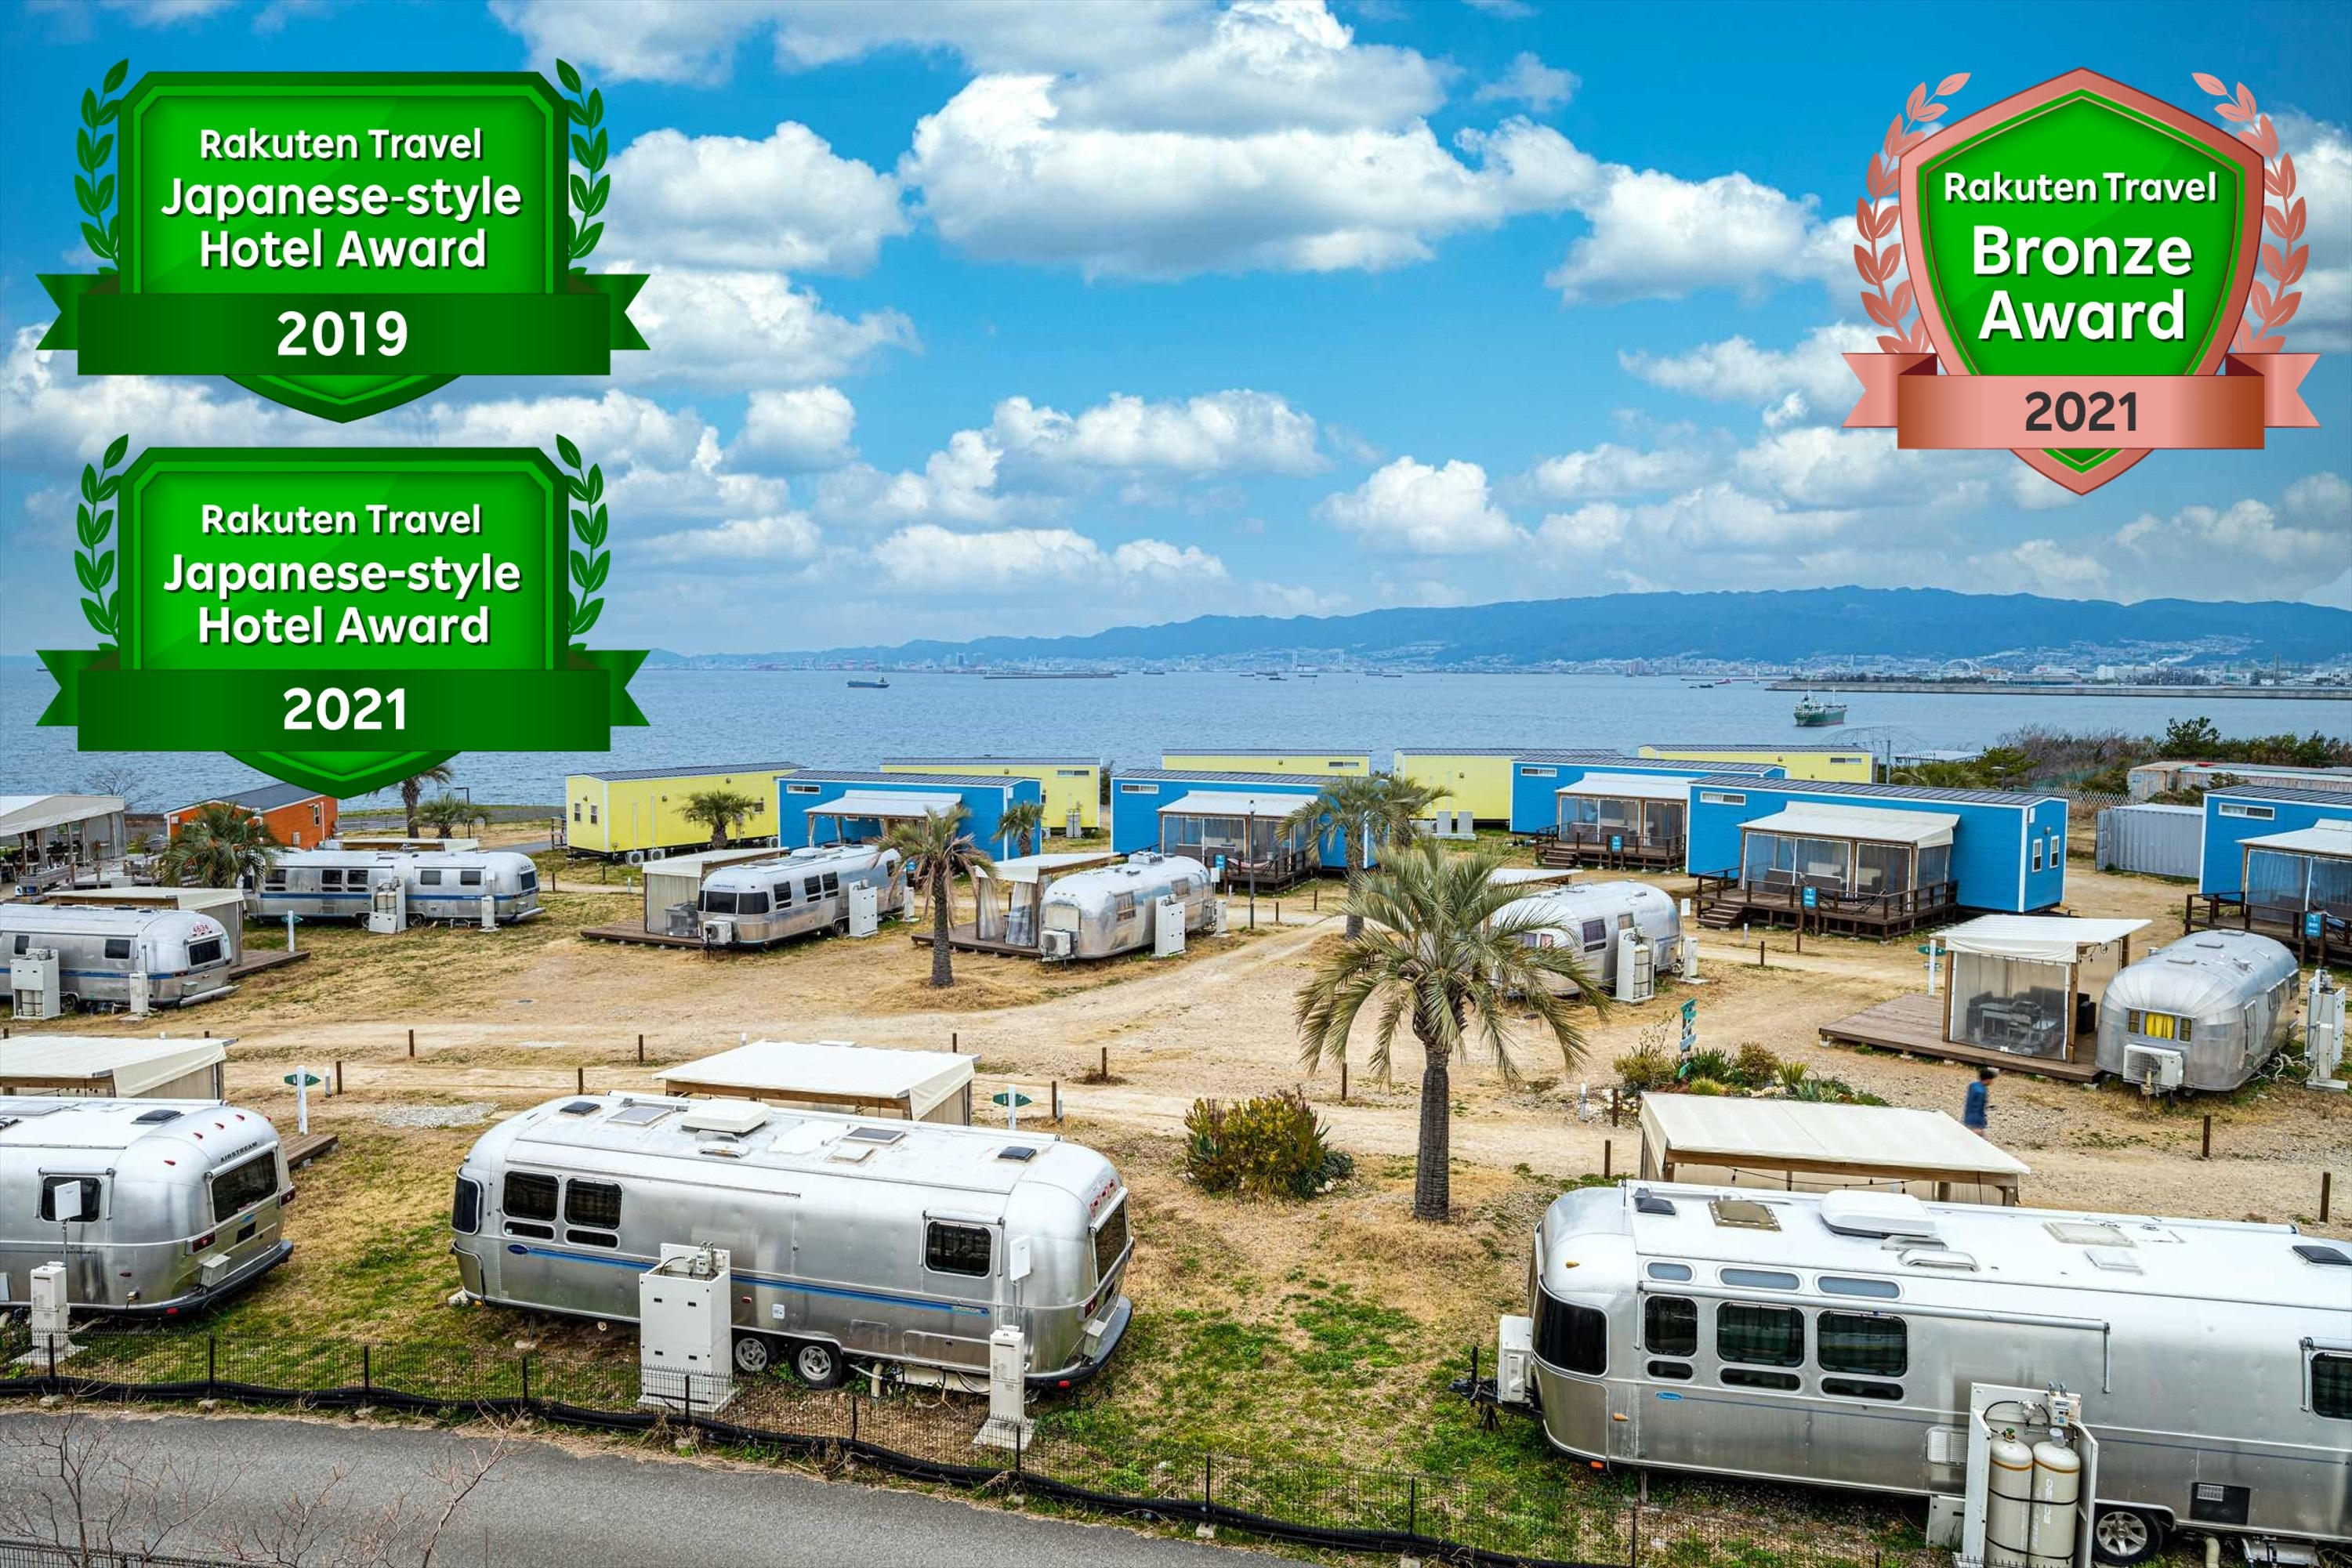 GRAN CAMPING パームガーデン舞洲 by WBF...